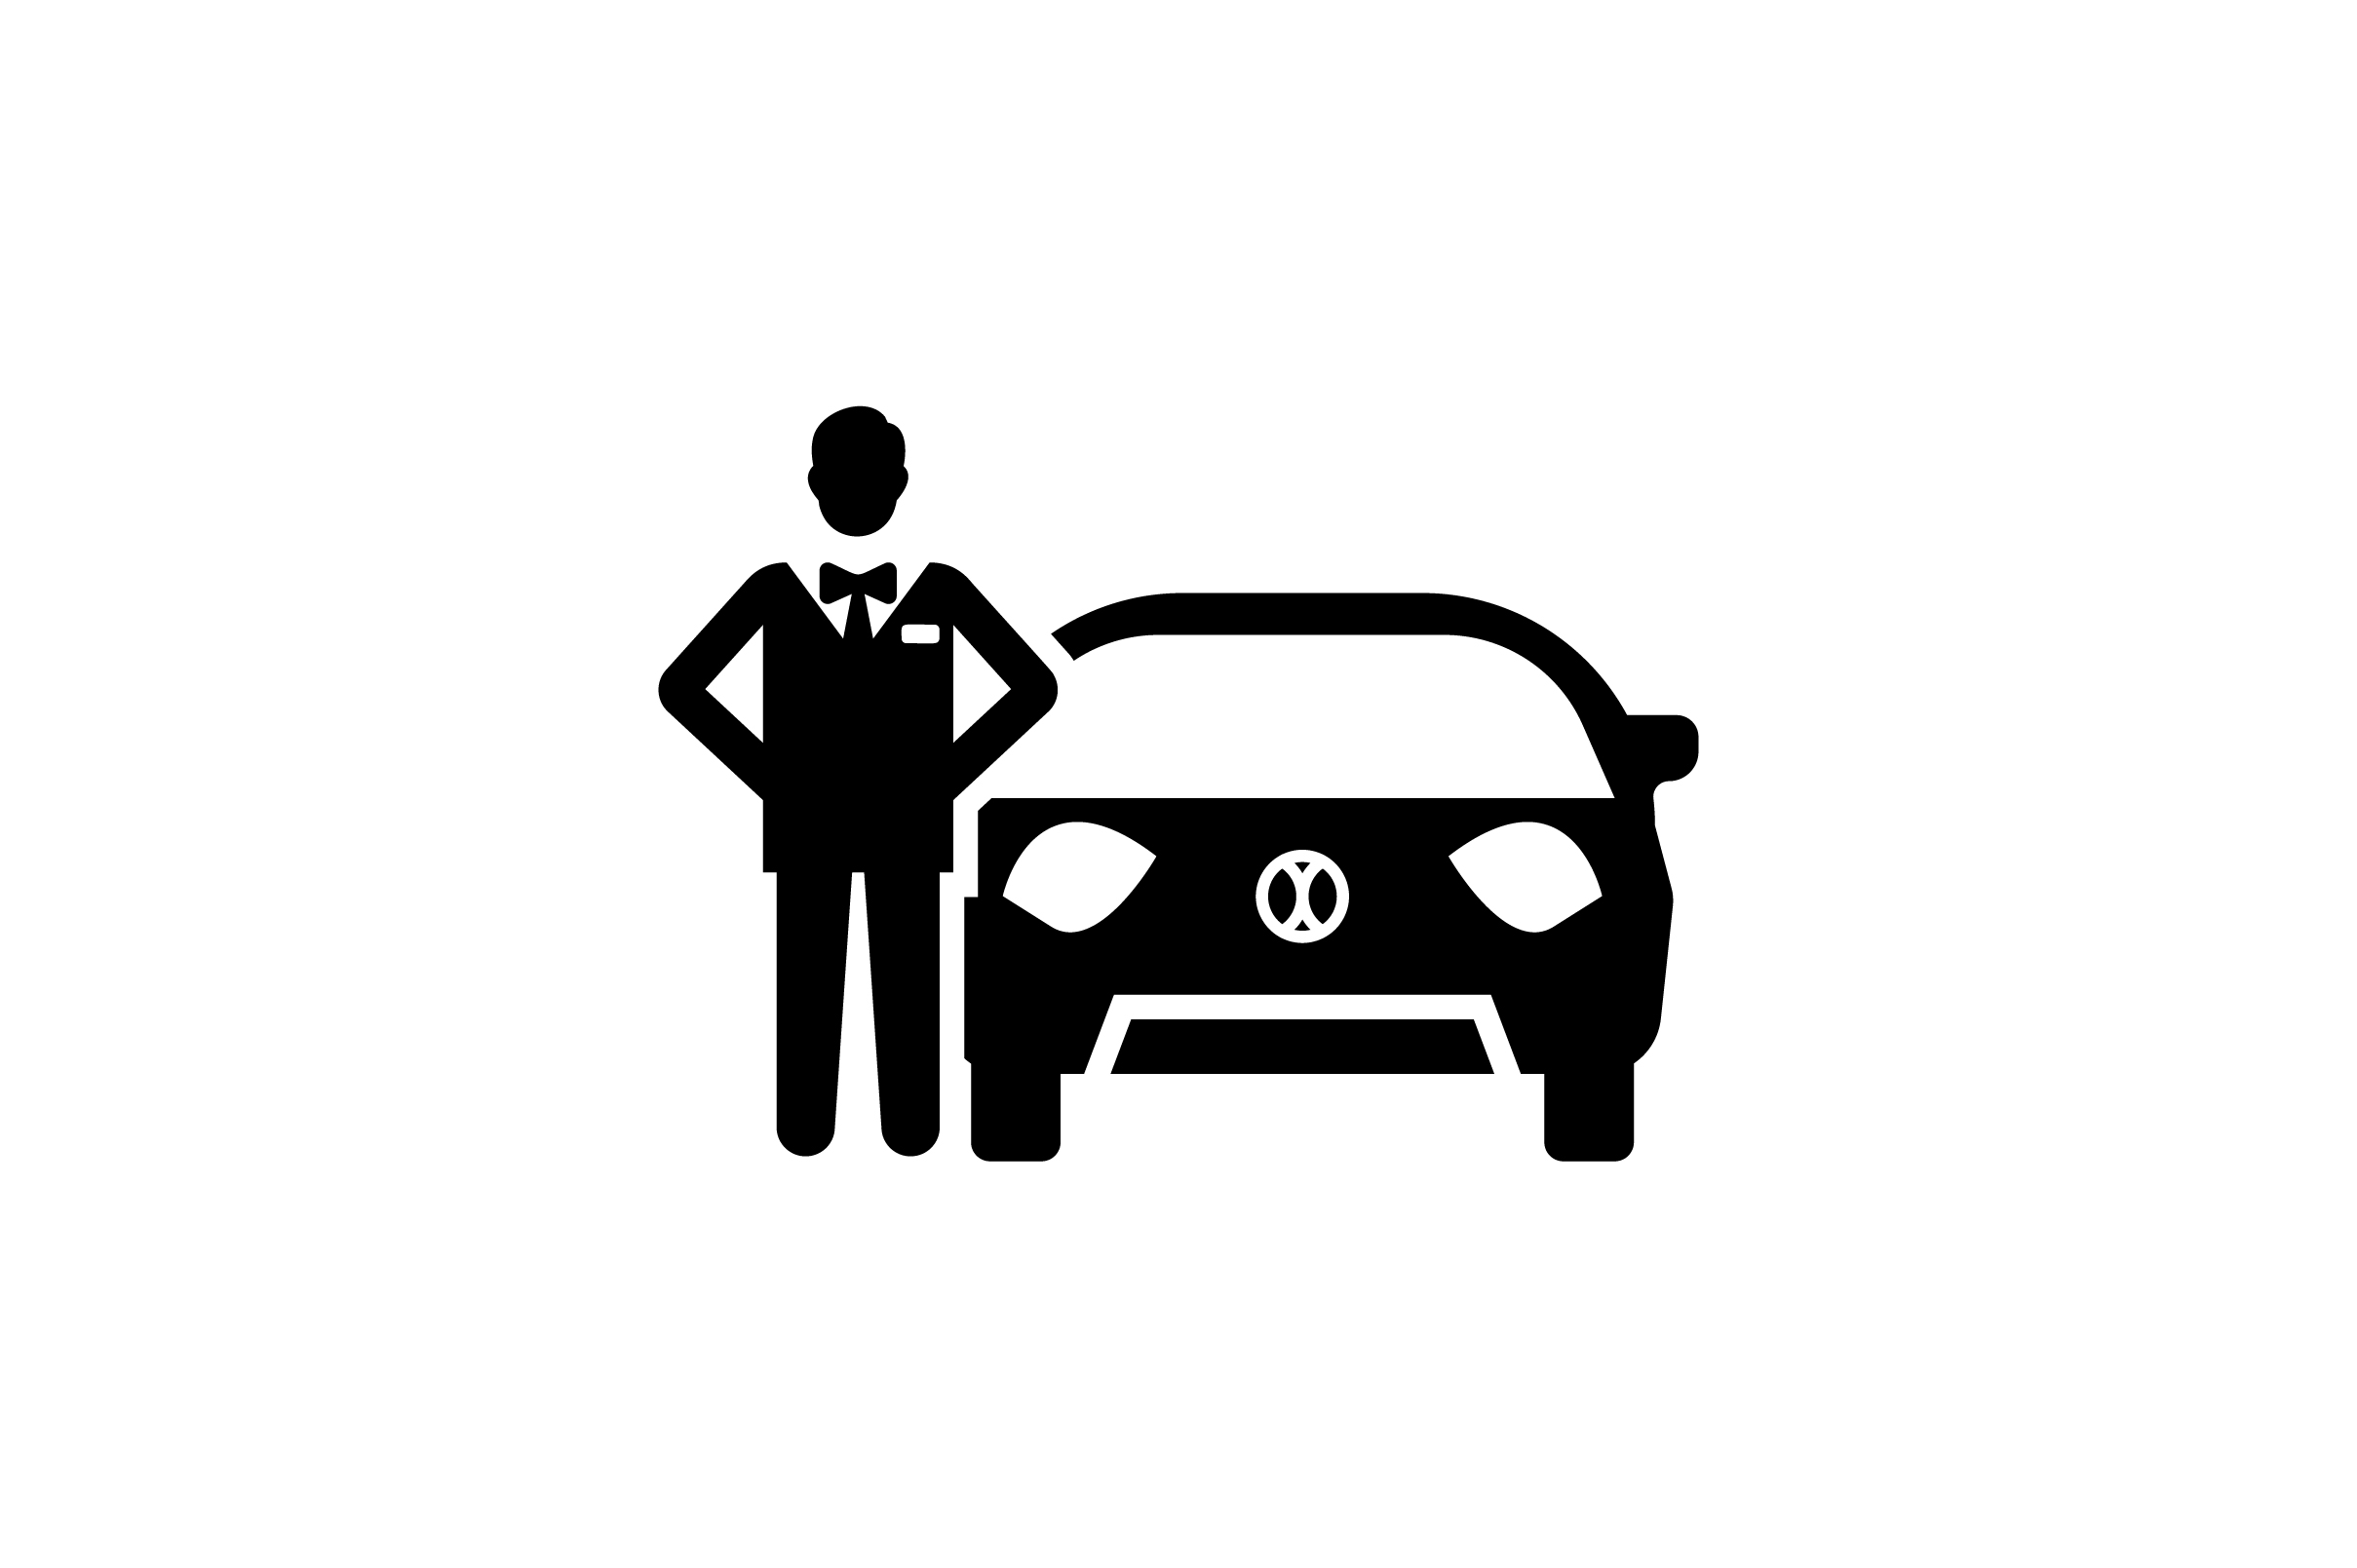 Download Free Man Stand By A Car Glyph Vector Icon Graphic By Riduwan Molla for Cricut Explore, Silhouette and other cutting machines.